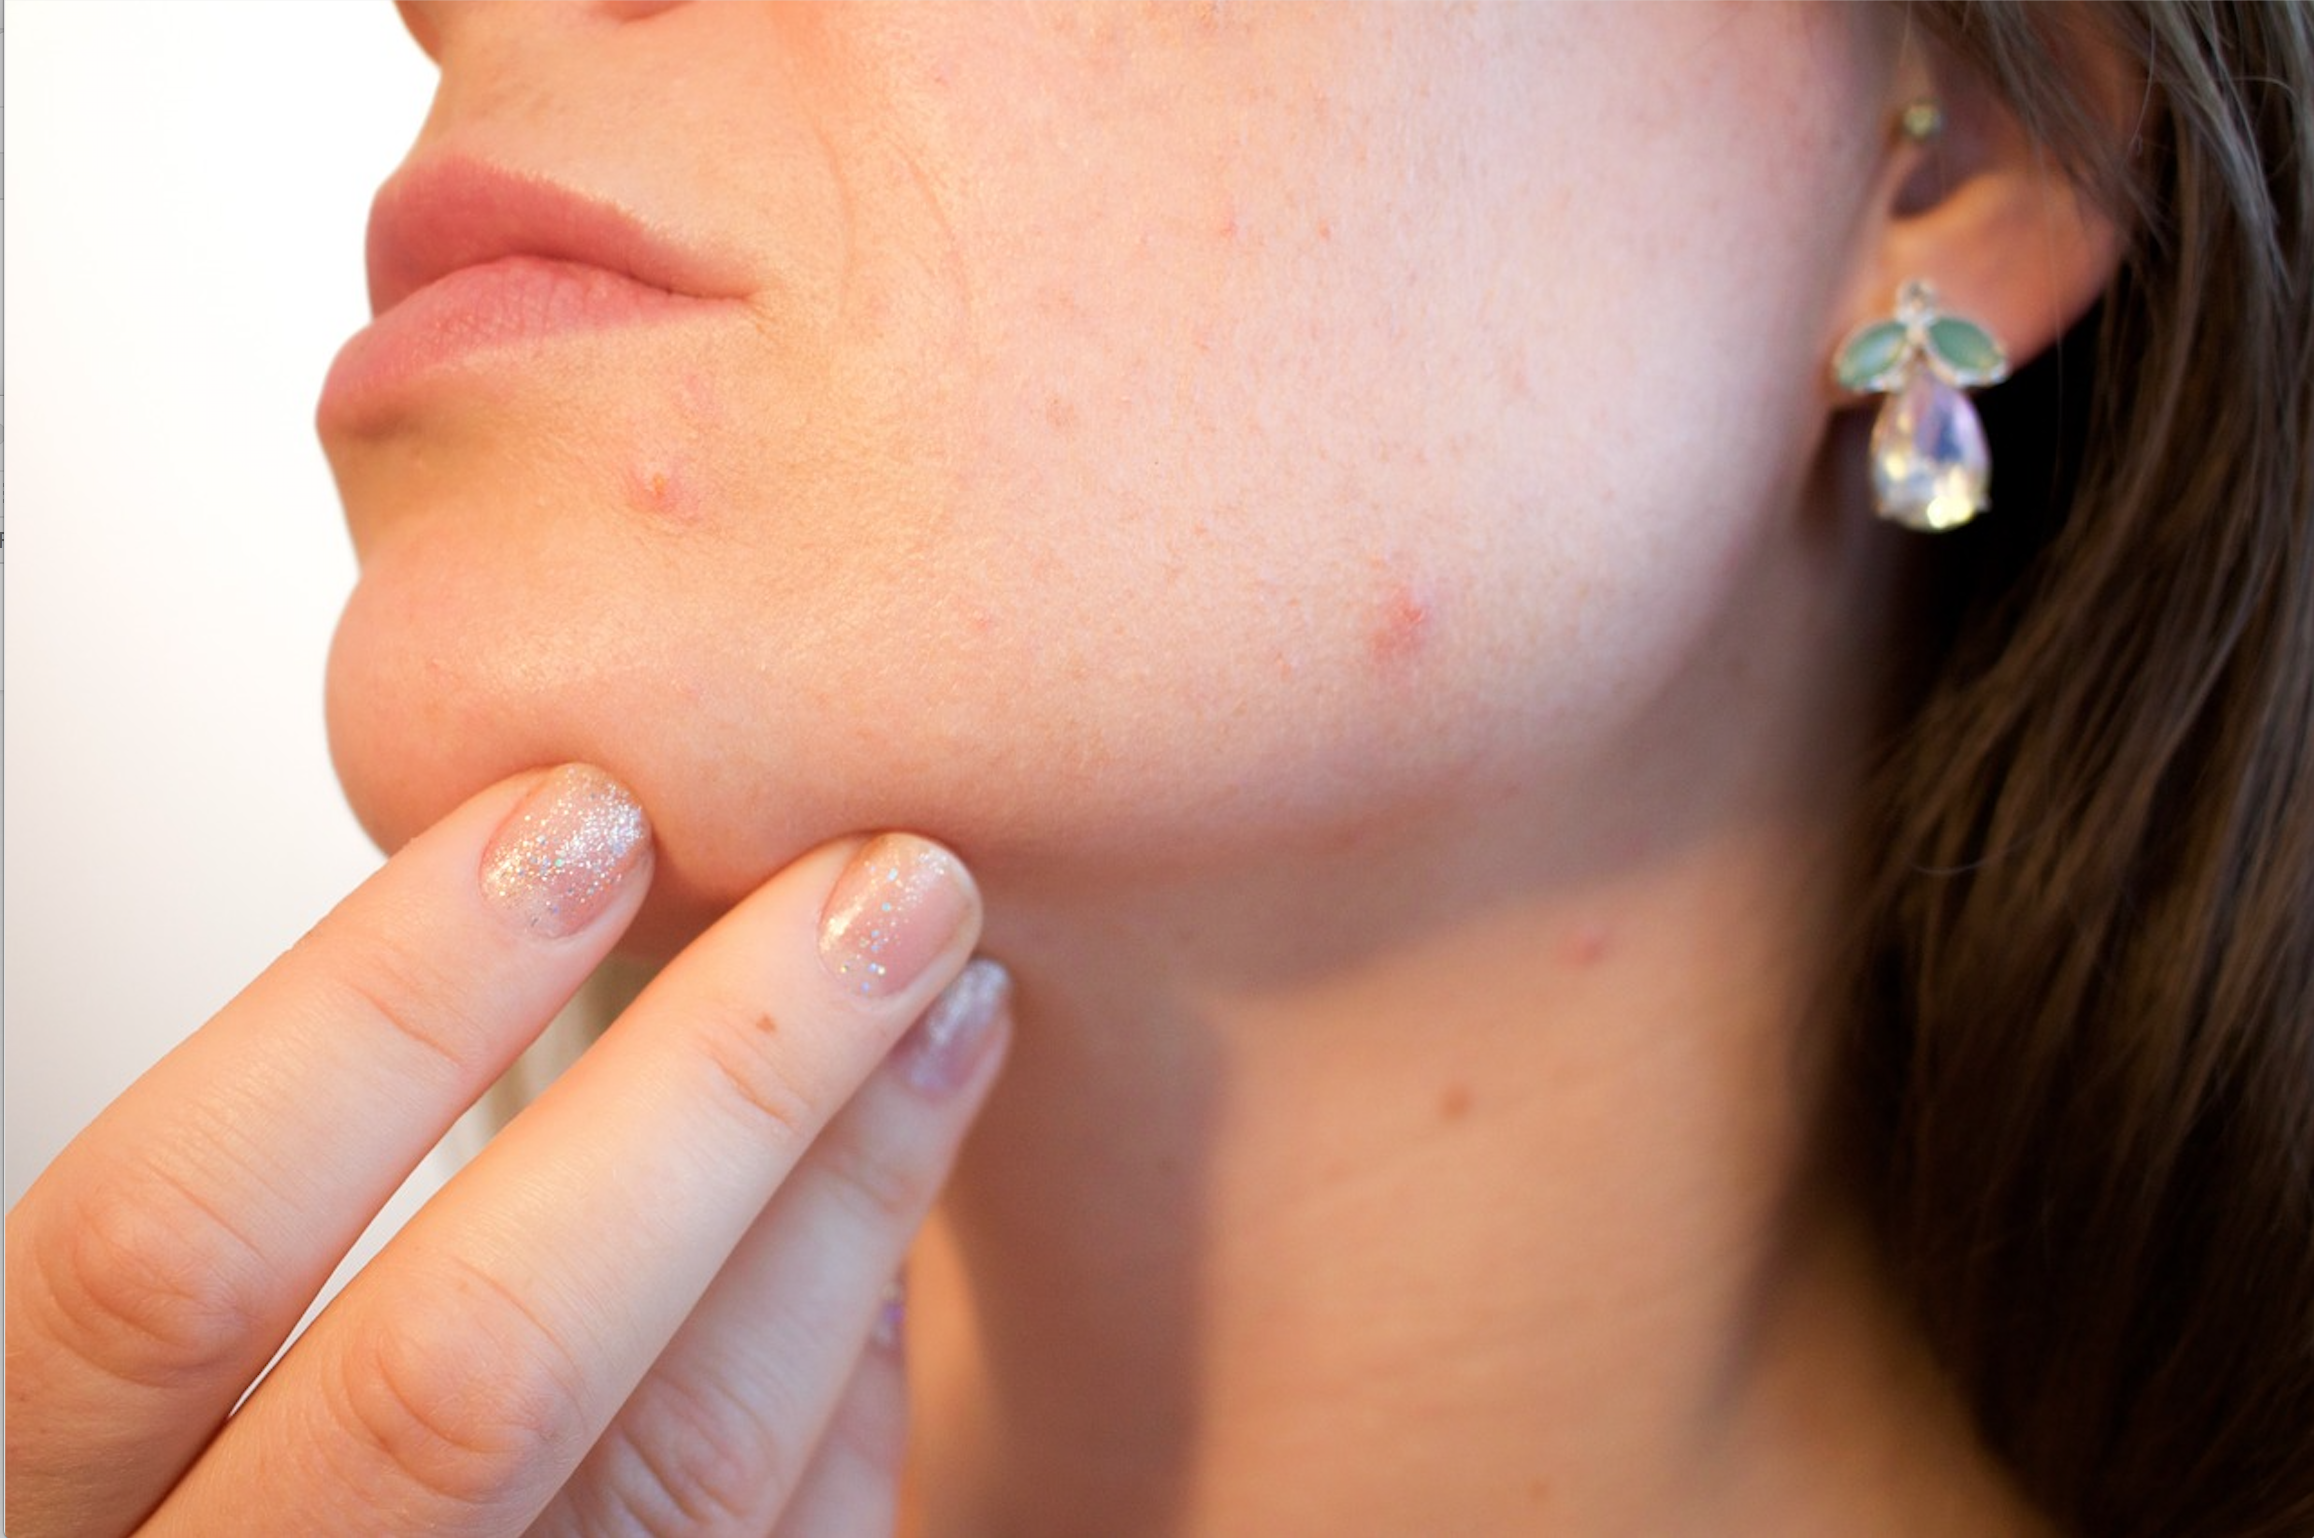 Acne, dermatitis